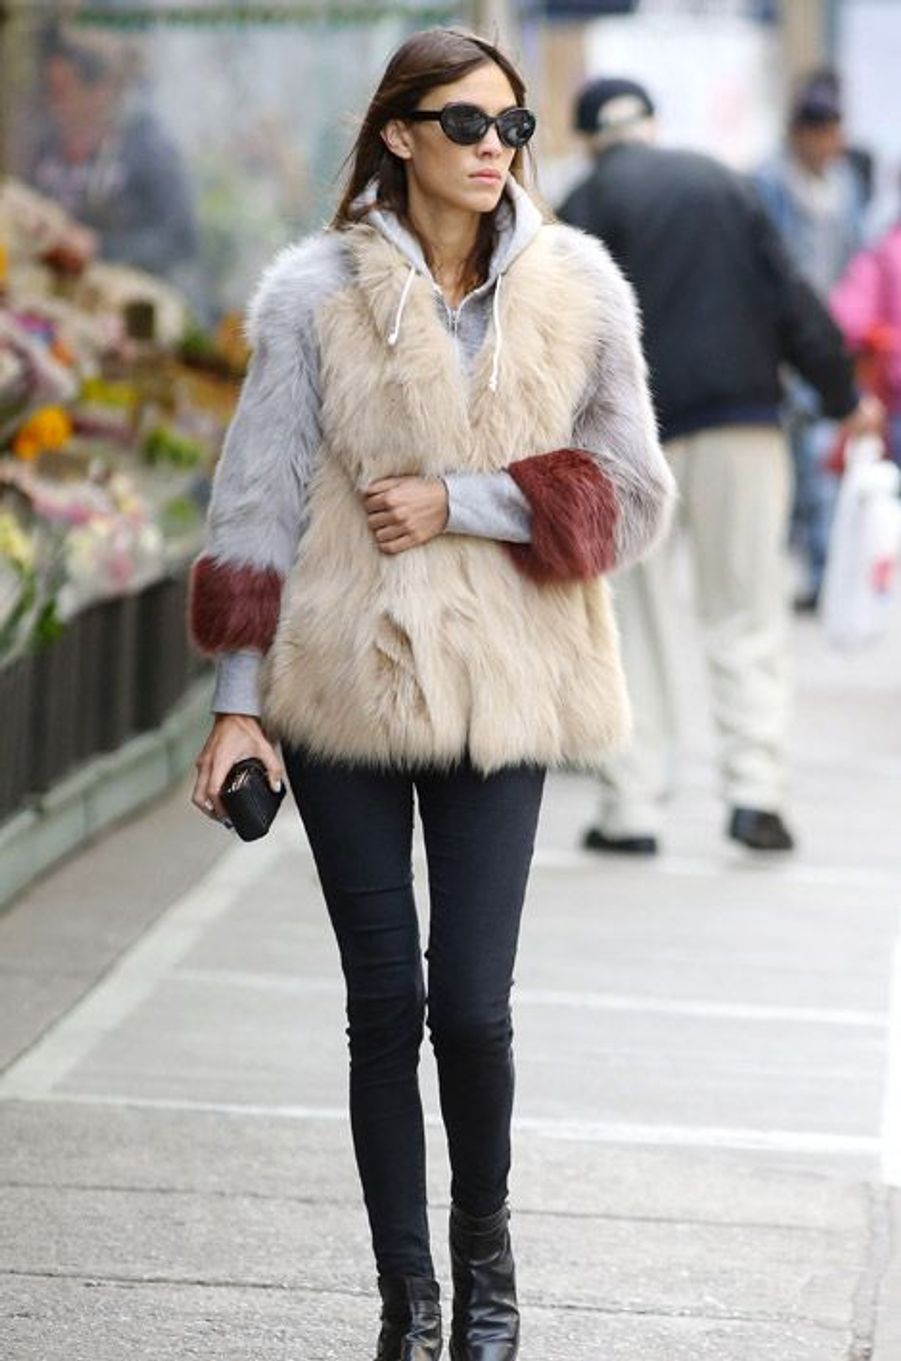 La it-girl Alexa Chung dans les rues de New York, le 31 octobre 2014